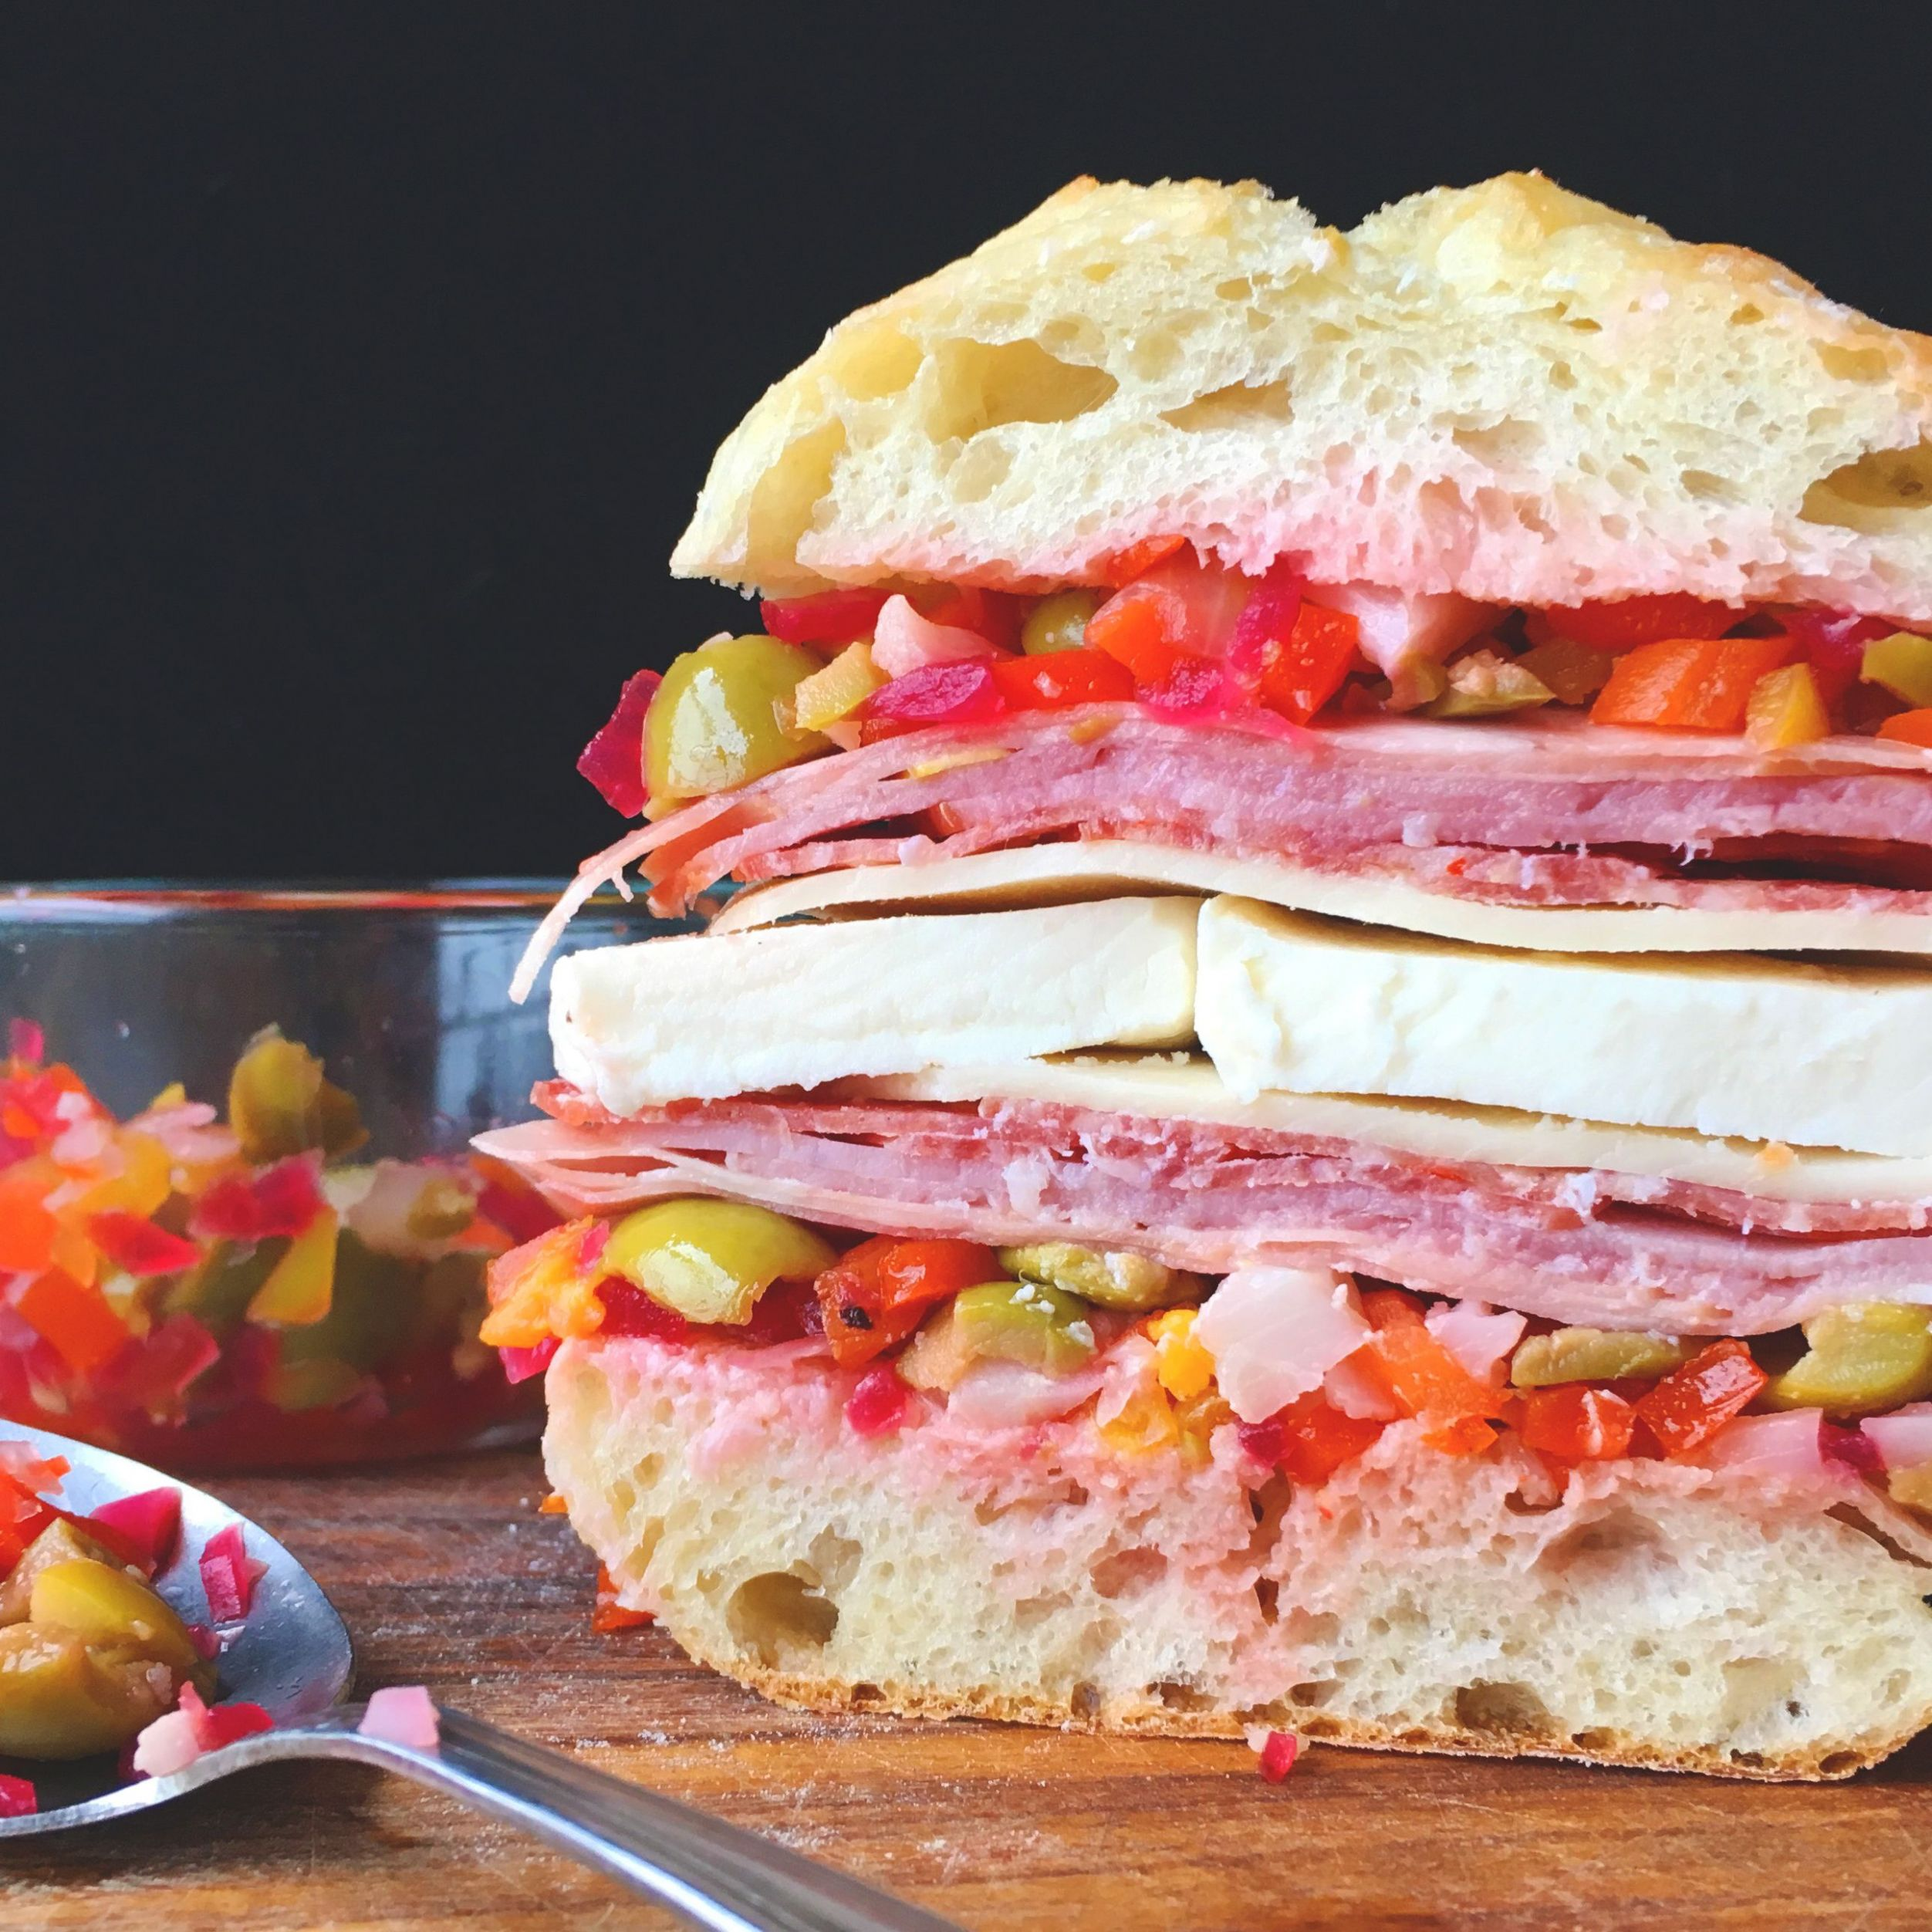 12 Creative Cold Sandwich Recipes - Sandwich Recipes To Take To Work